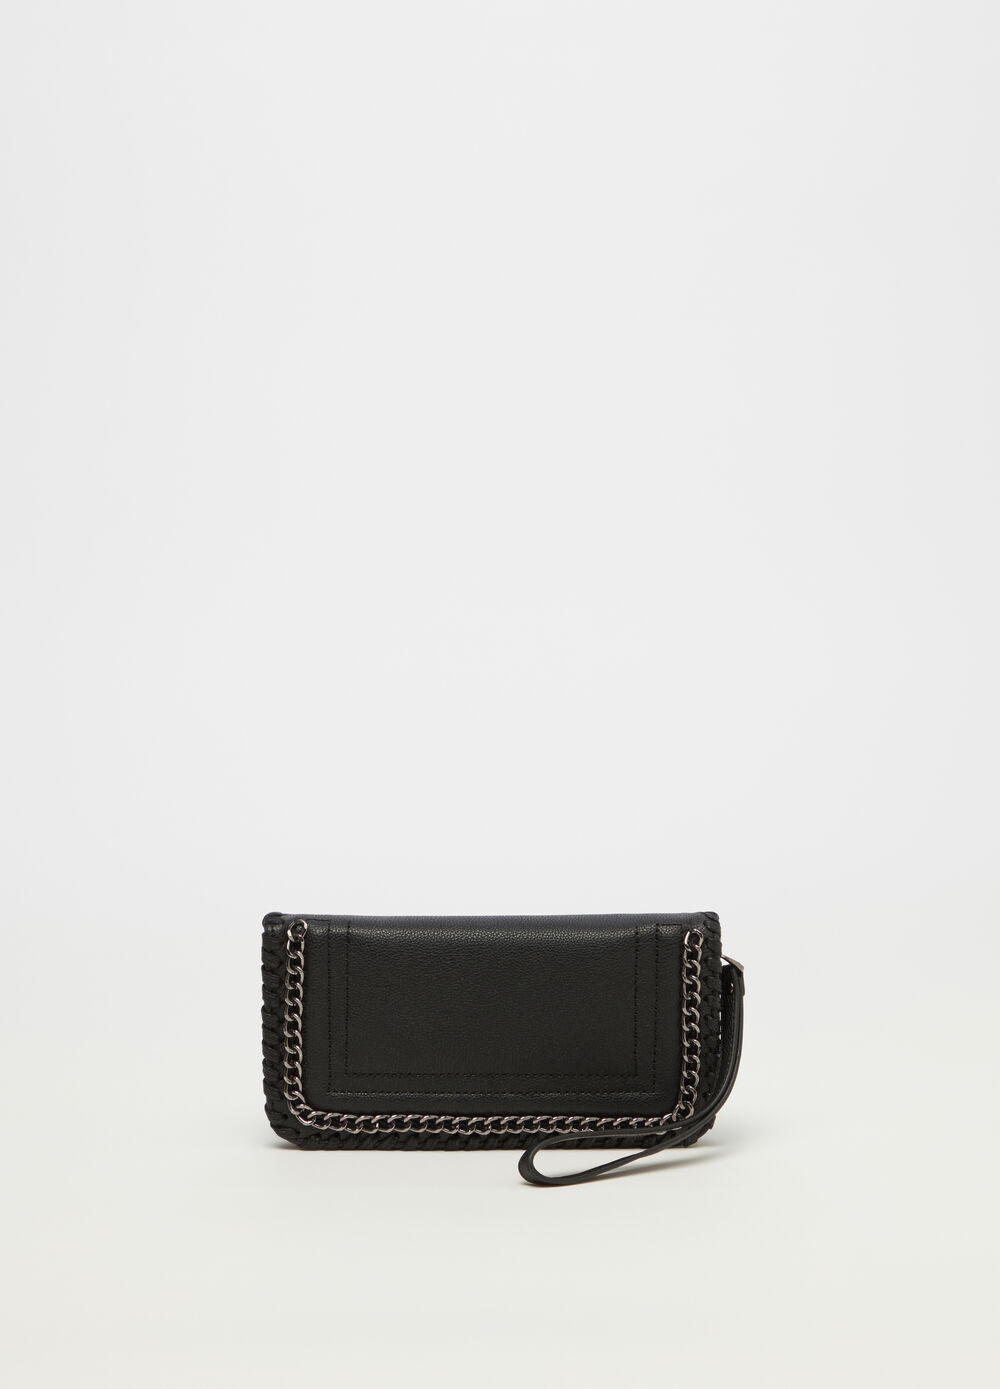 Purse with chain detail